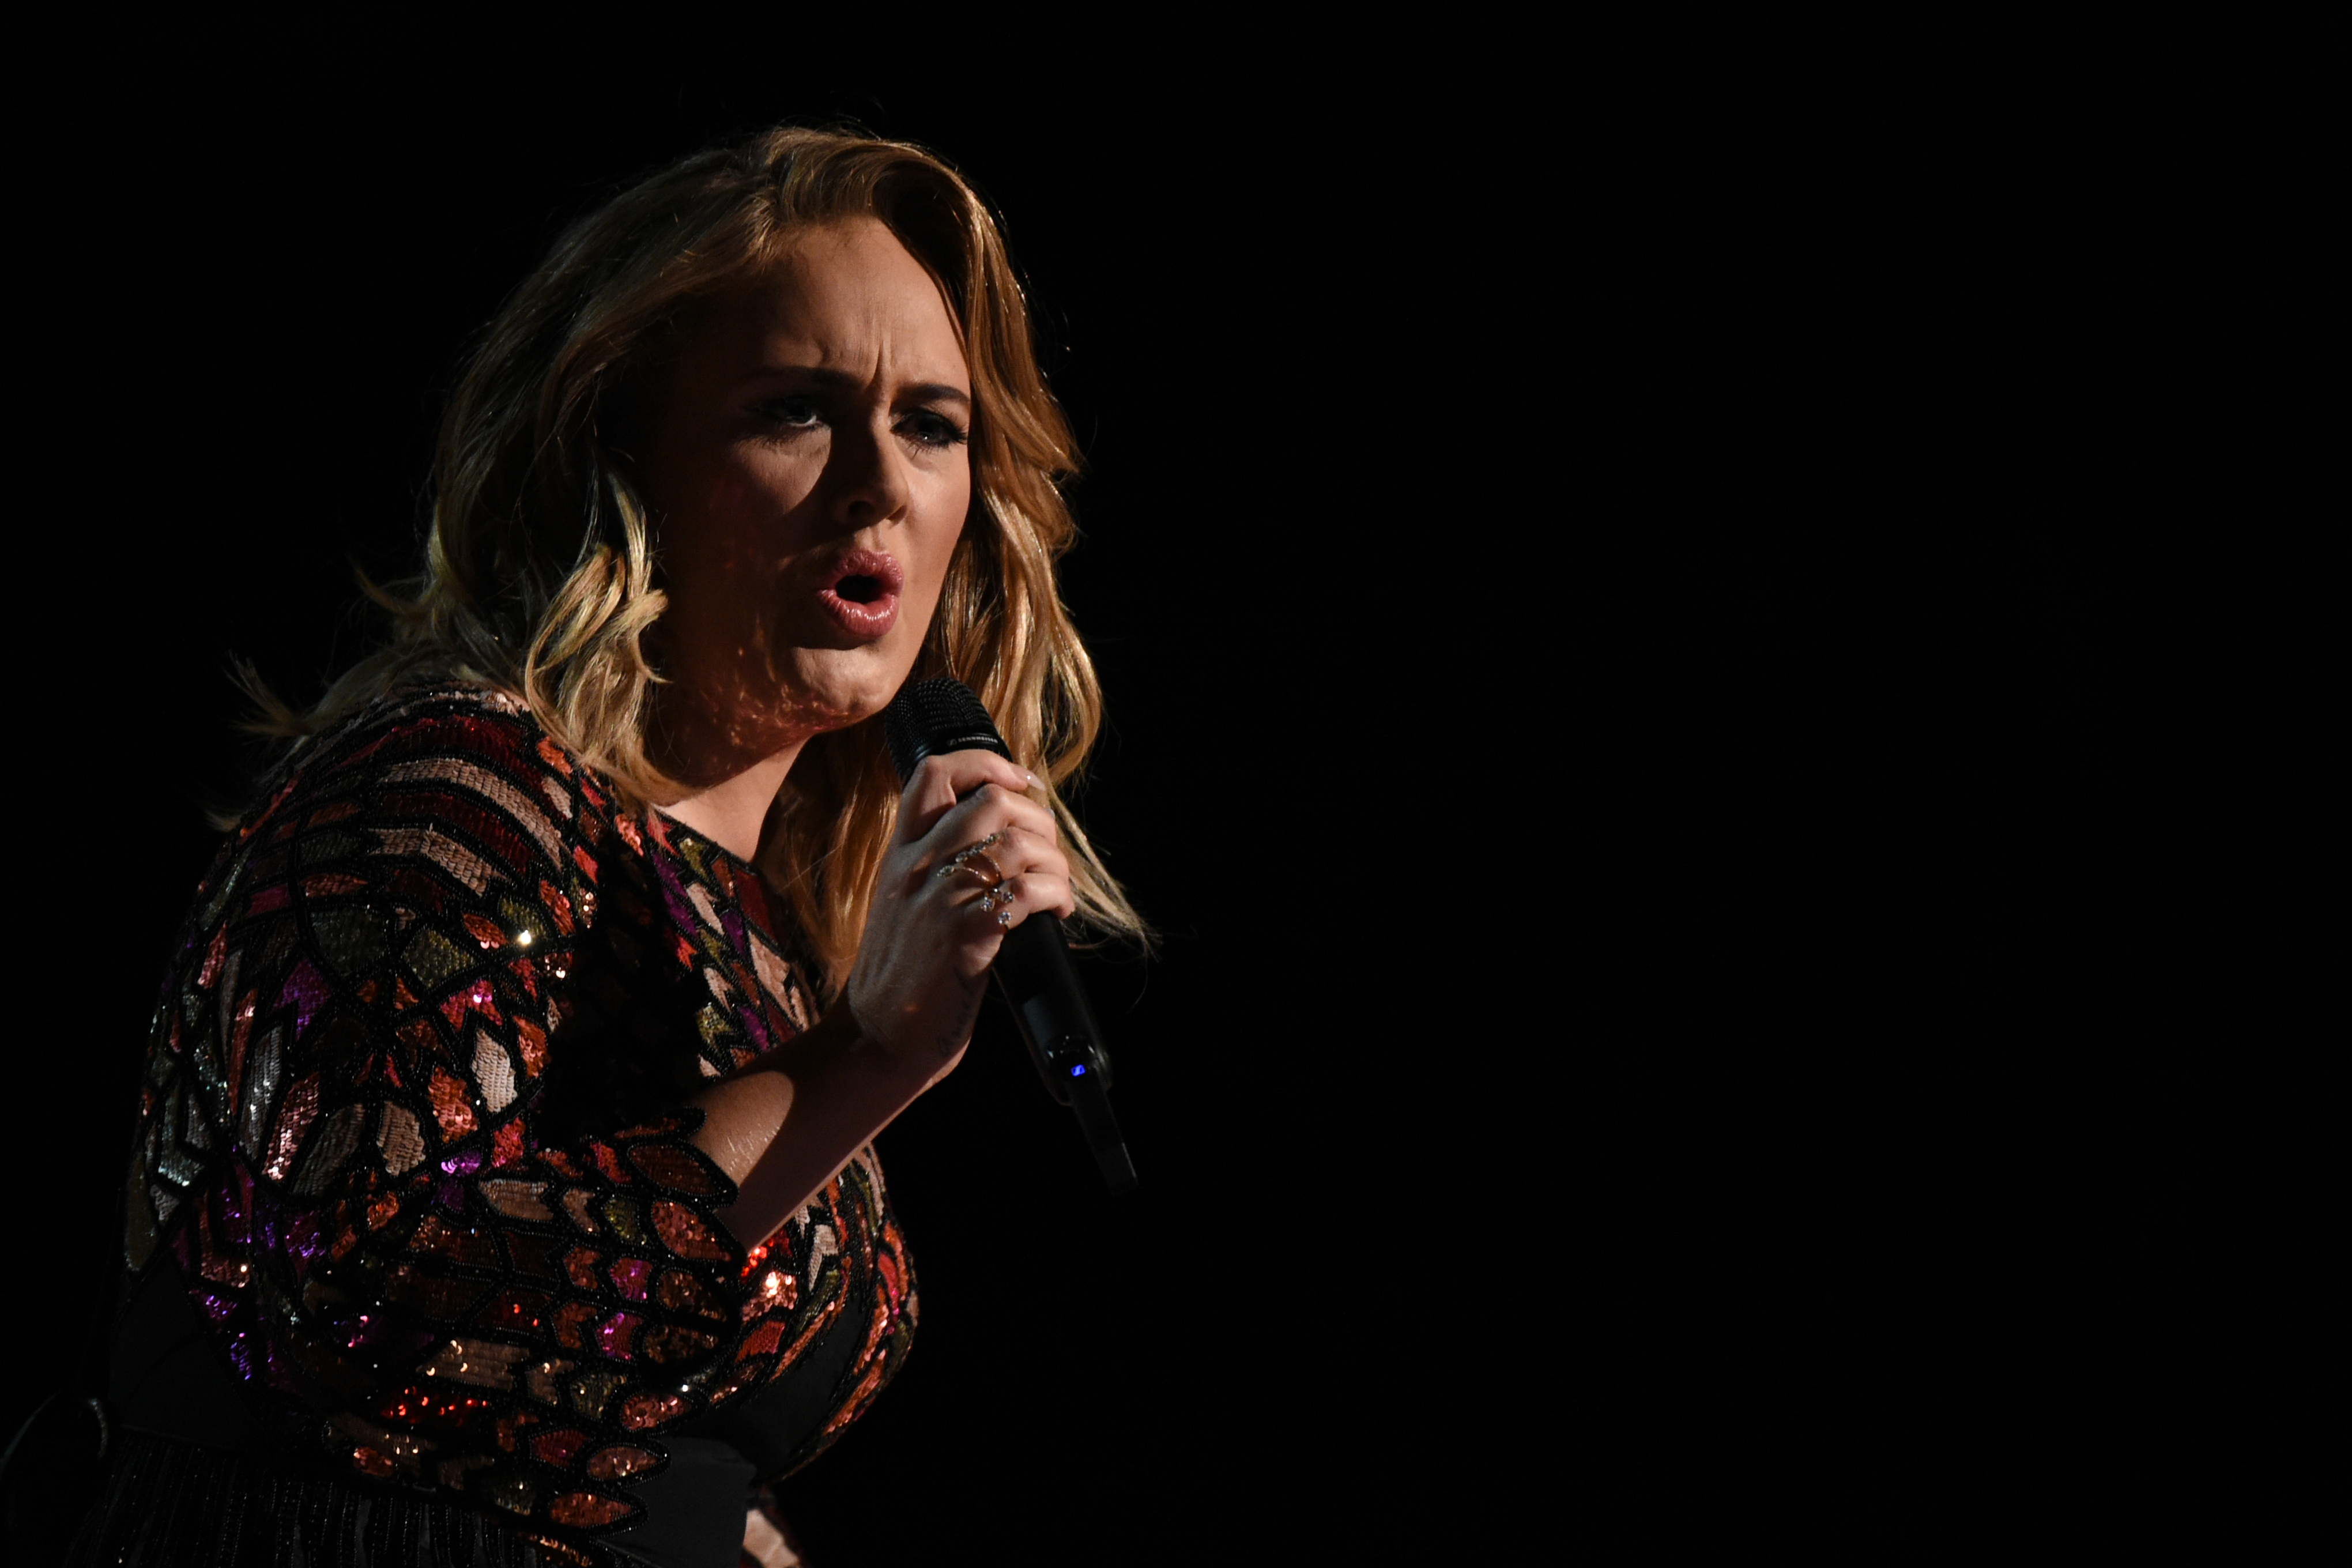 British singer Adele performs onstage during the 59th Annual Grammy music Awards on February 12, 2017, in Los Angeles, California.